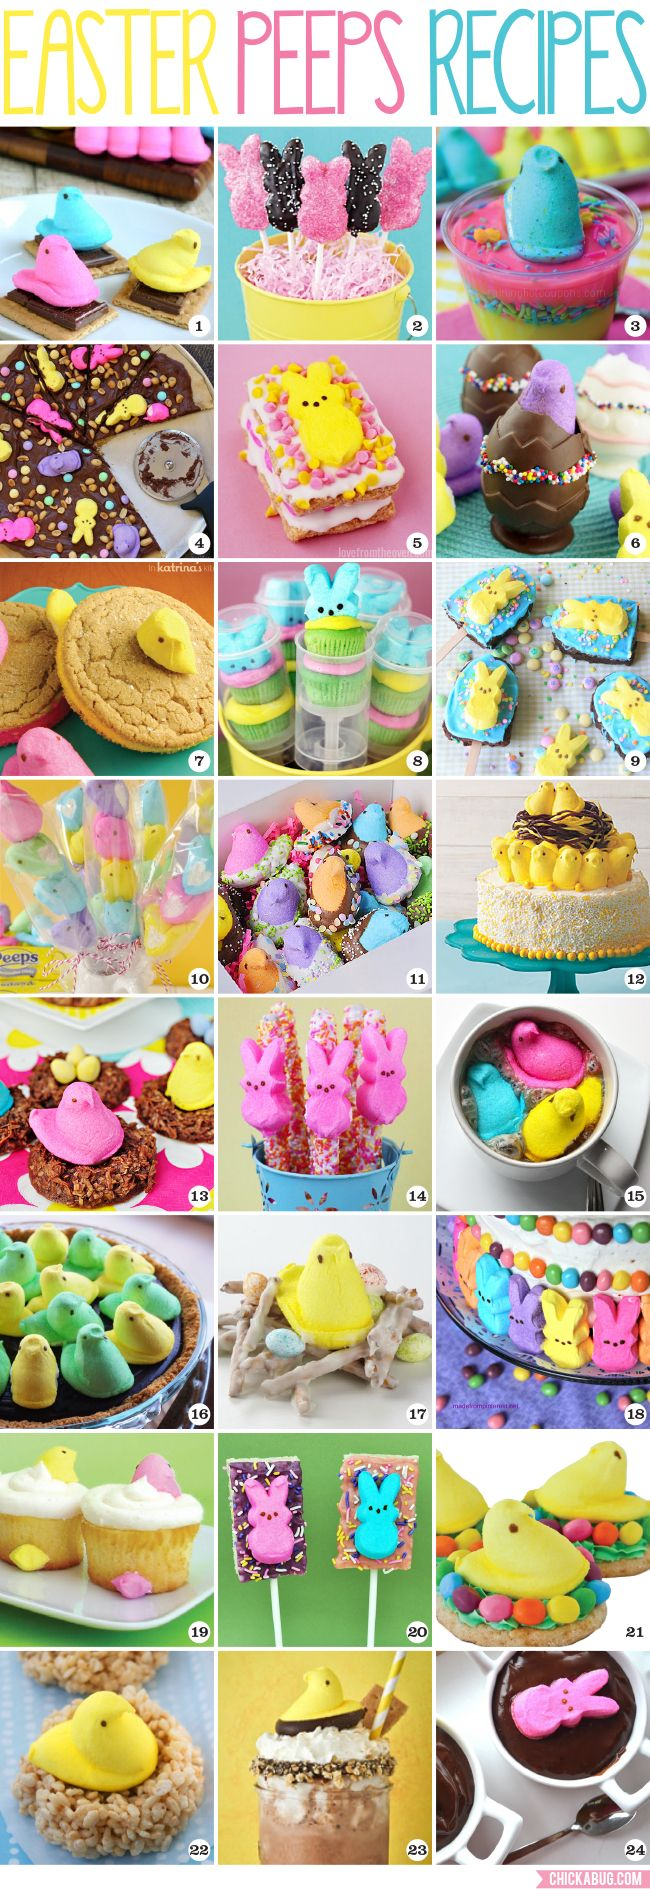 The Best Easter Peeps Recipes!